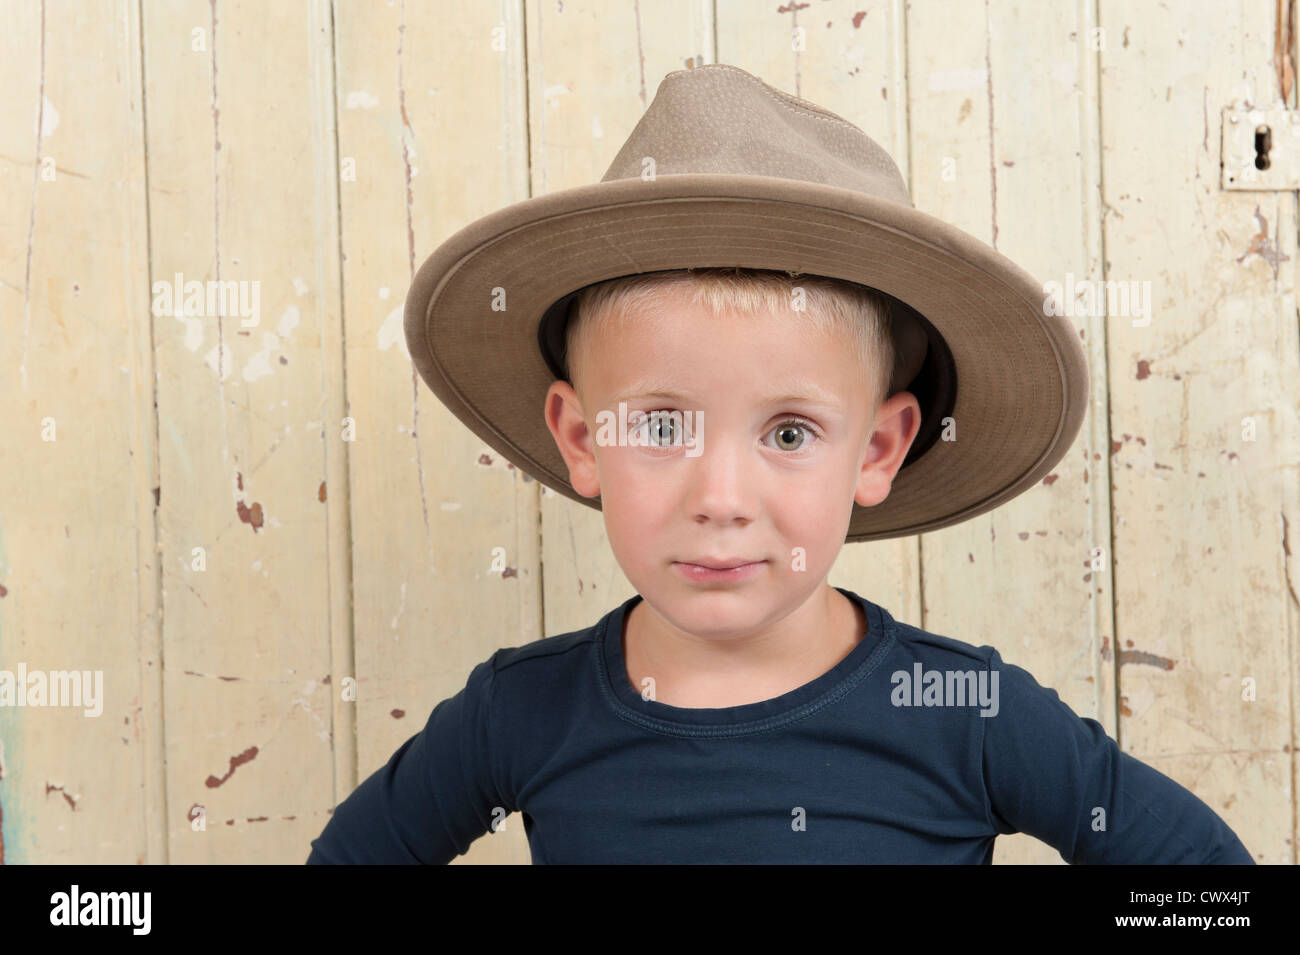 d4a36eac344ad little boy with cowboy hat against an old wooden door Stock Photo ...